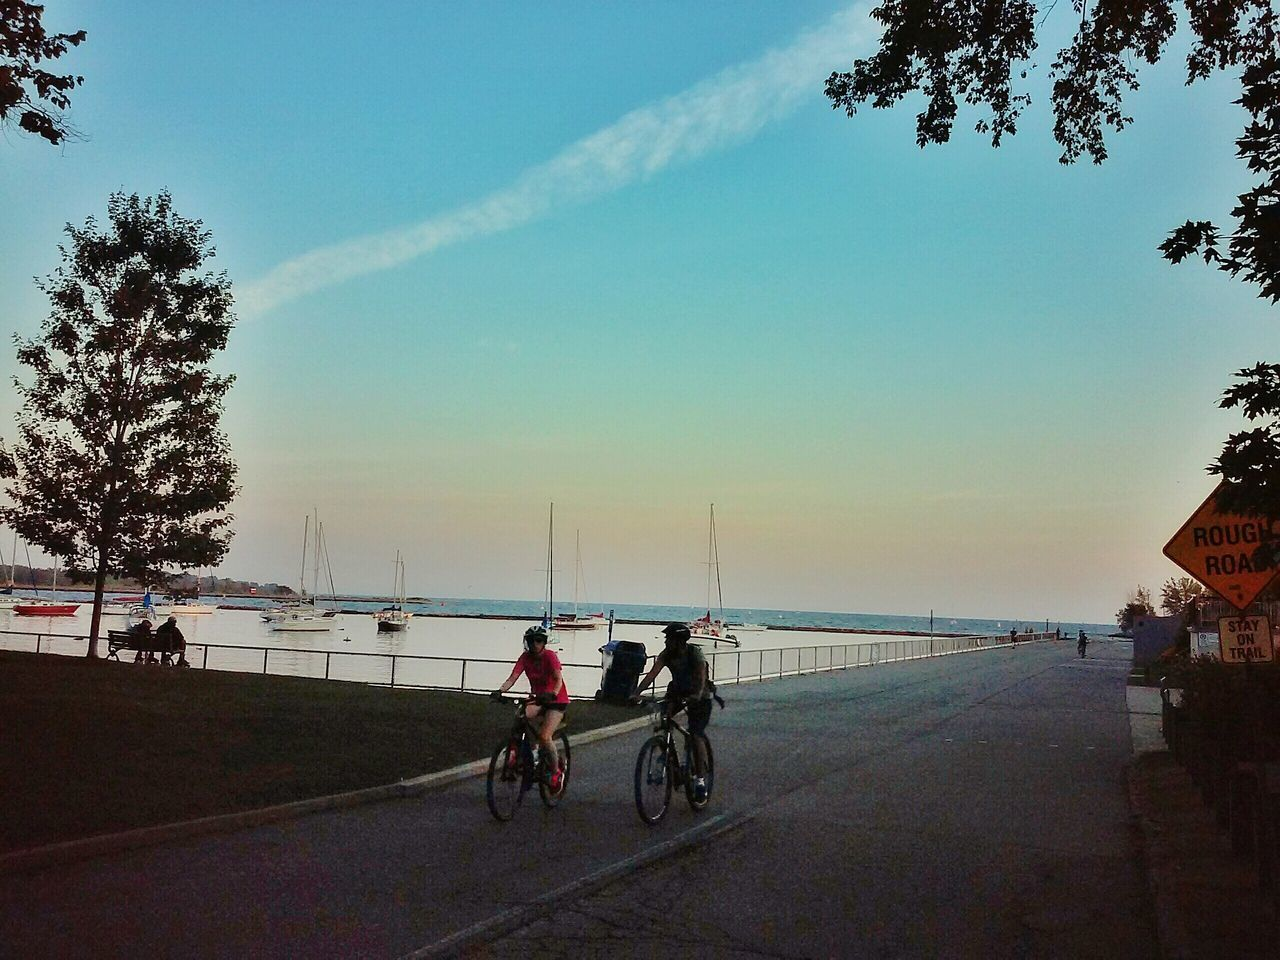 Dusk Toronto Canada TorontoLife Toronto Landscape Things I Like Bycicle Lovers Couple Sunday Sports Port Ships Sailing Boat Lake Ontario Lakeshore Road Sign Up Close Street Photography The Street Photographer - 2016 EyeEm Awards The Following The Essence Of Summer The OO Mission The 00 Mission